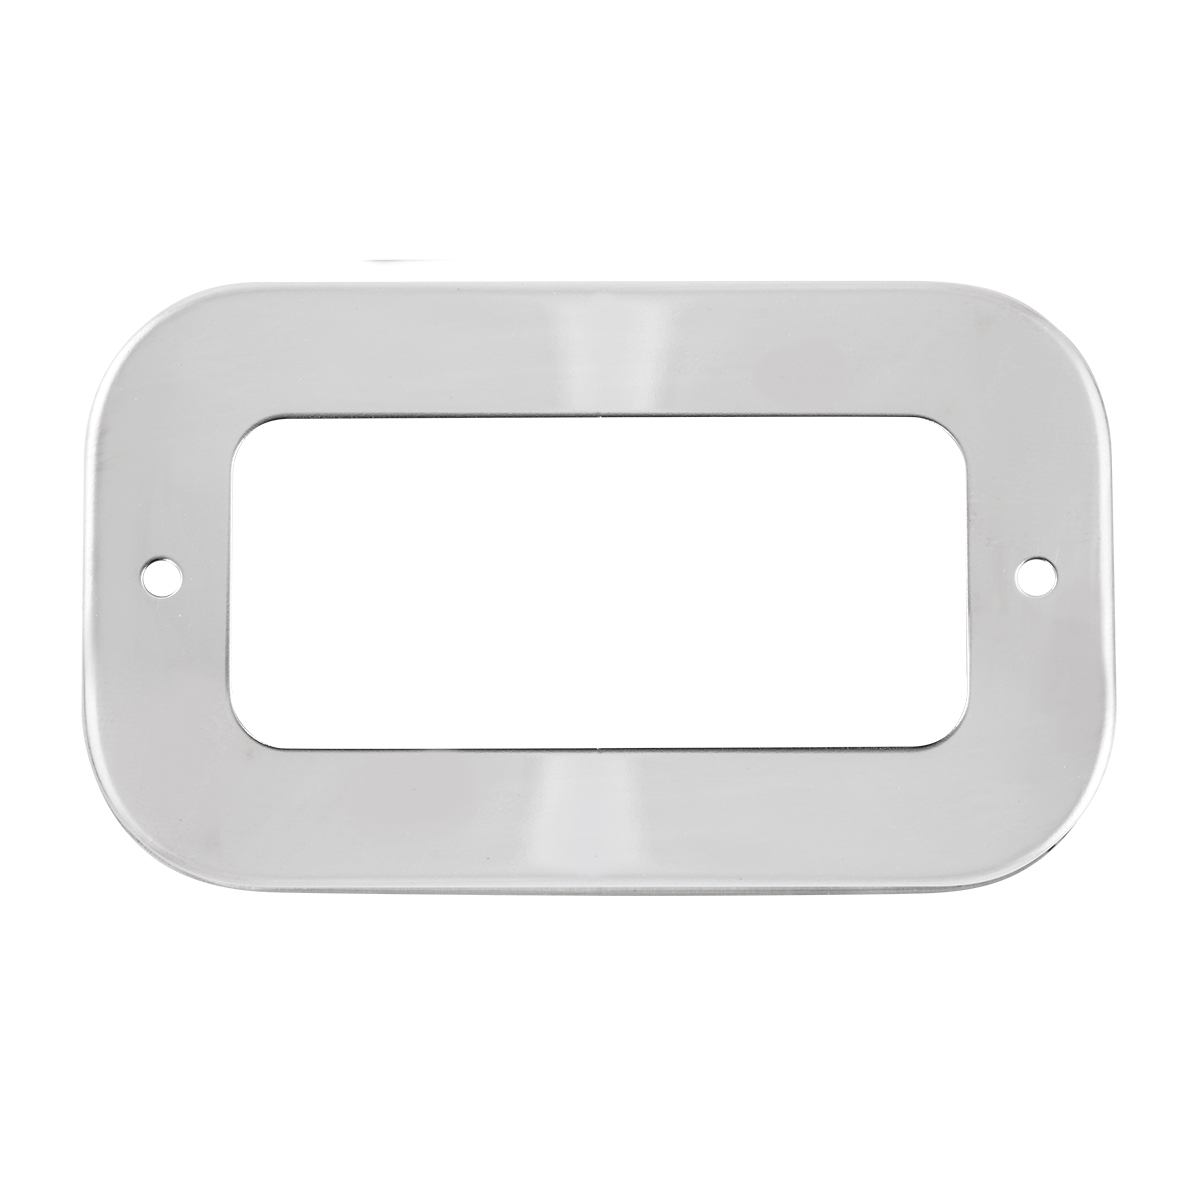 80957 Stainless Steel Grommet Covers for Small Rectangular Lights